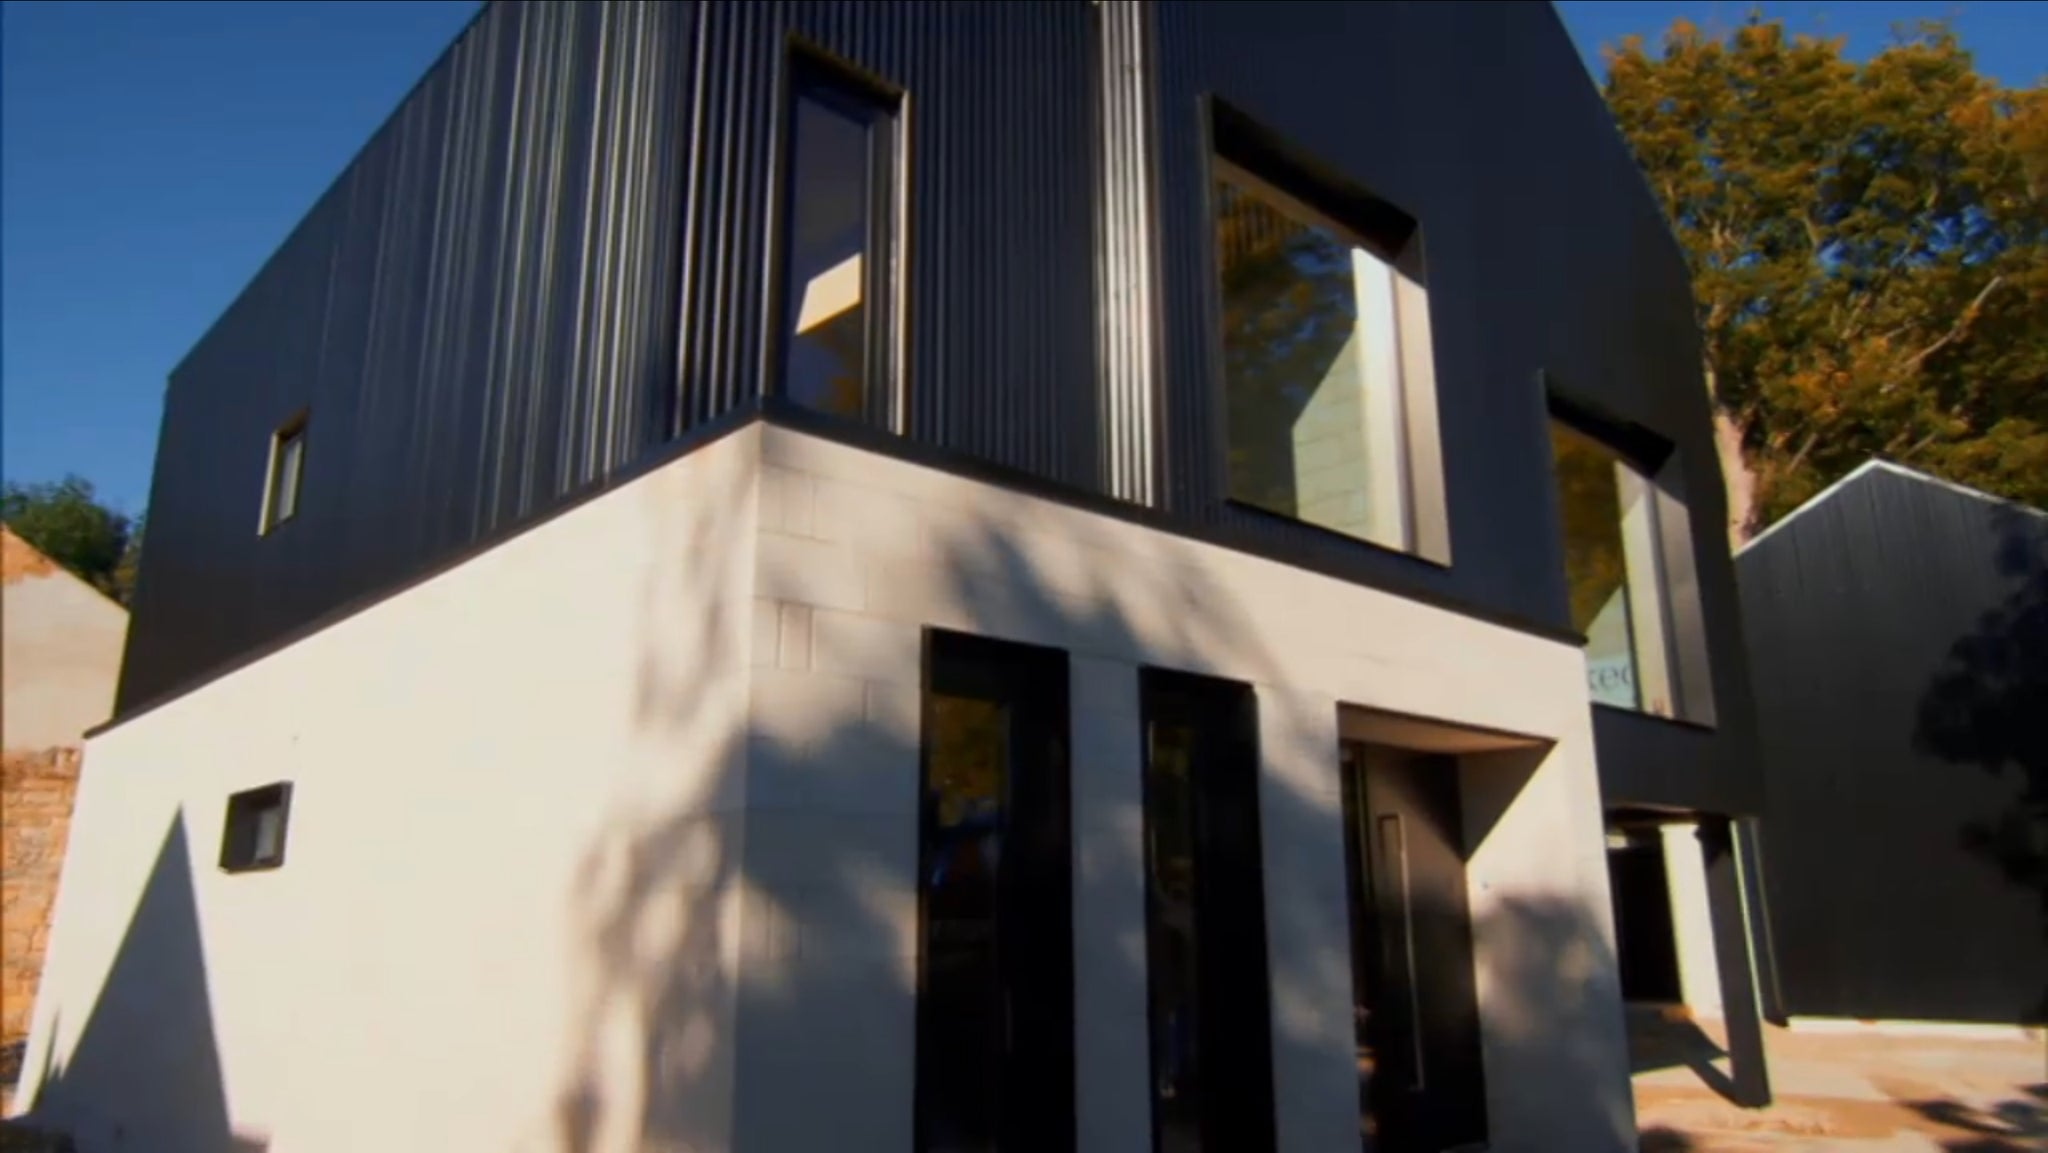 Ome Smart Doorbell As Seen on TV for Grand Designs Sheffield Build